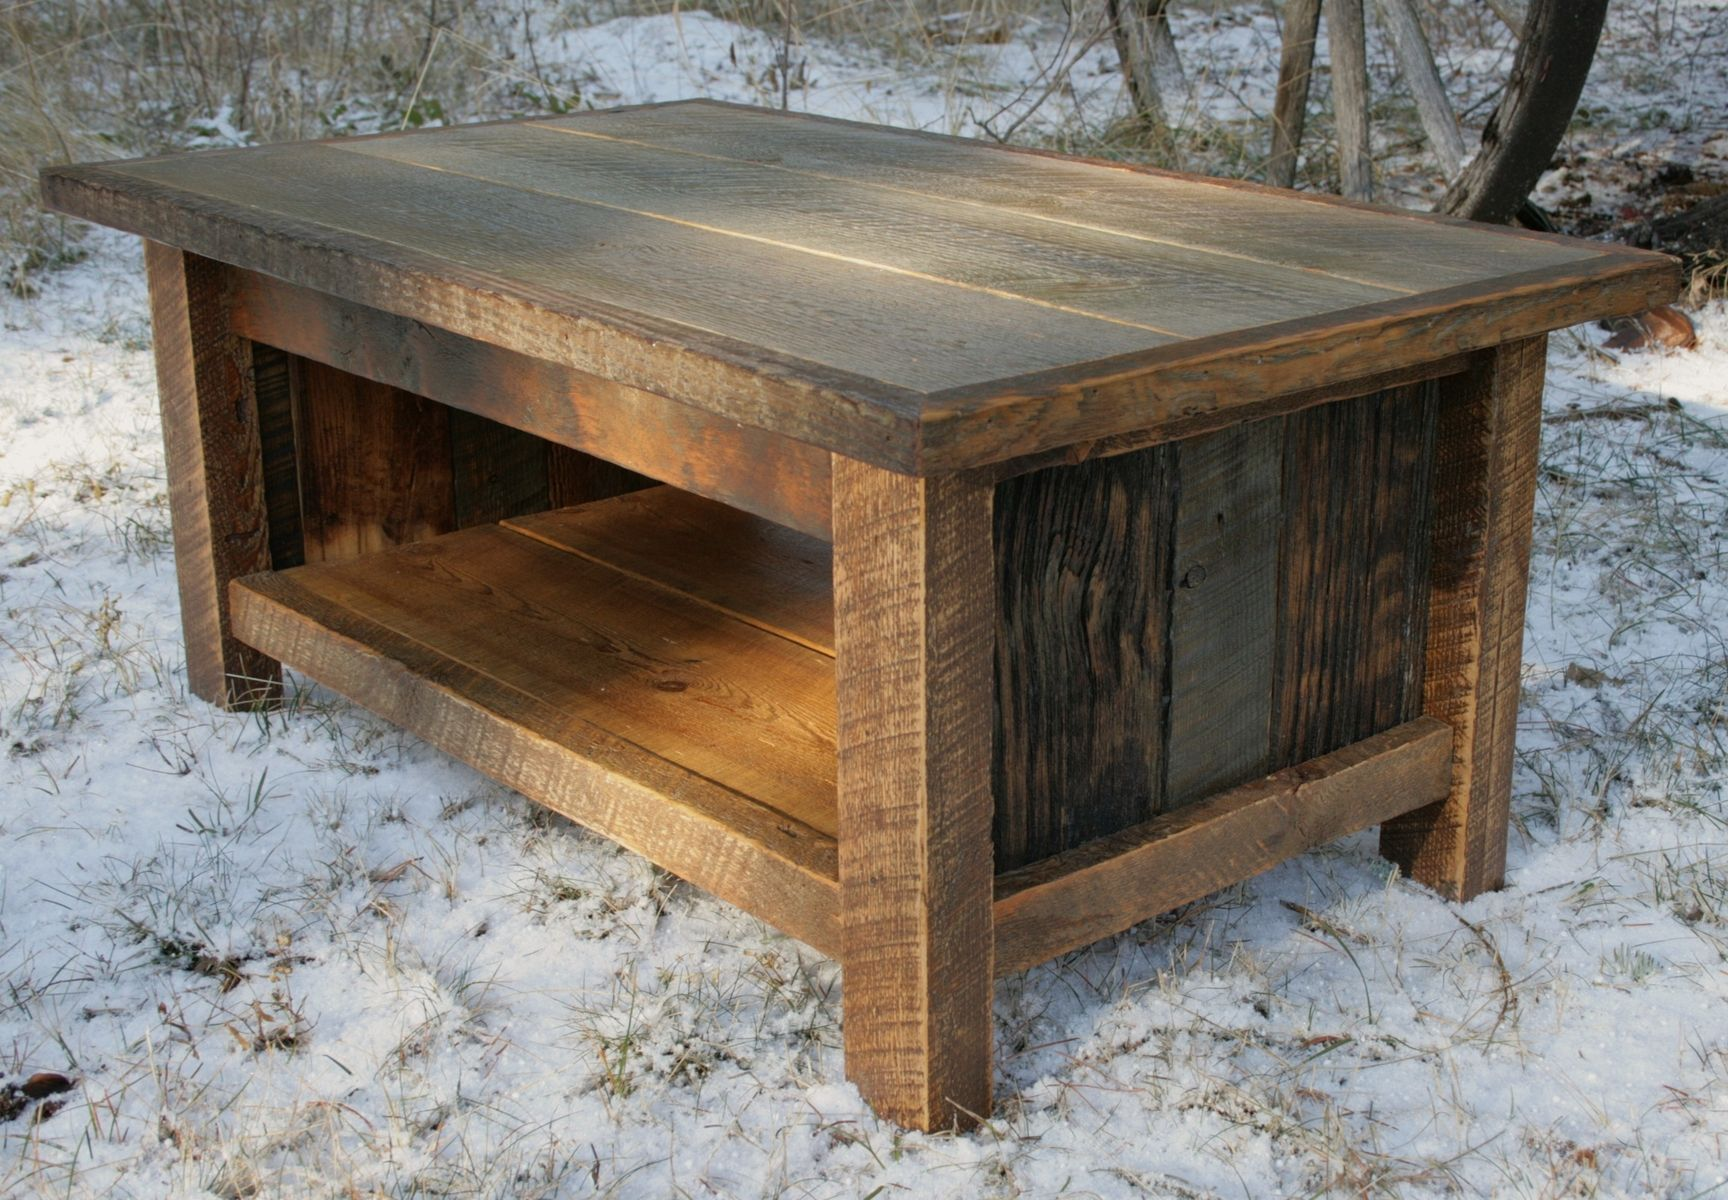 Hand Crafted Rustic Reclaimed Coffee Table By Echo Peak Design - Reclaimed wood coffee table los angeles